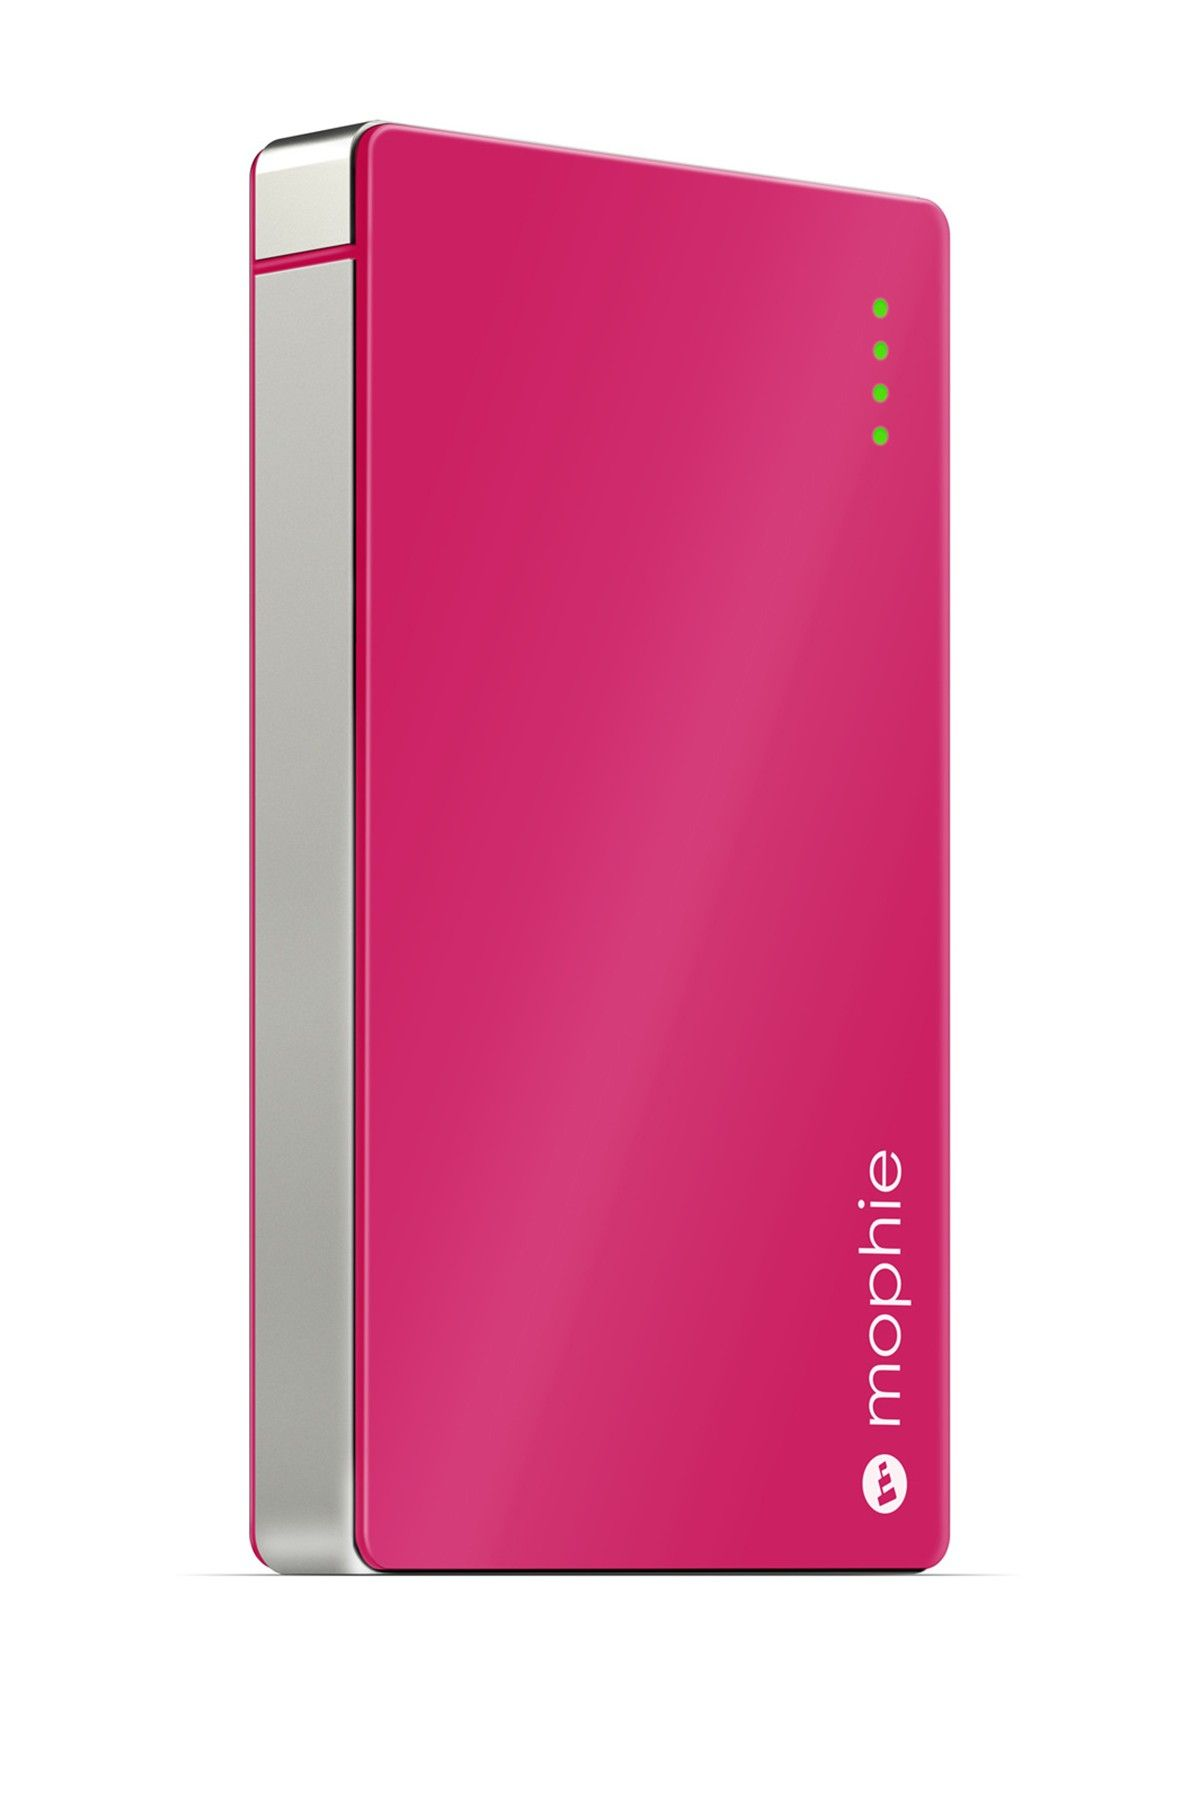 Asus zenpower abtu005 10050mah power bank review specifications asus zenpower abtu005 10050mah power bank review specifications and price online in india gadgets shiksha pinterest bank reviews and tech fandeluxe Choice Image